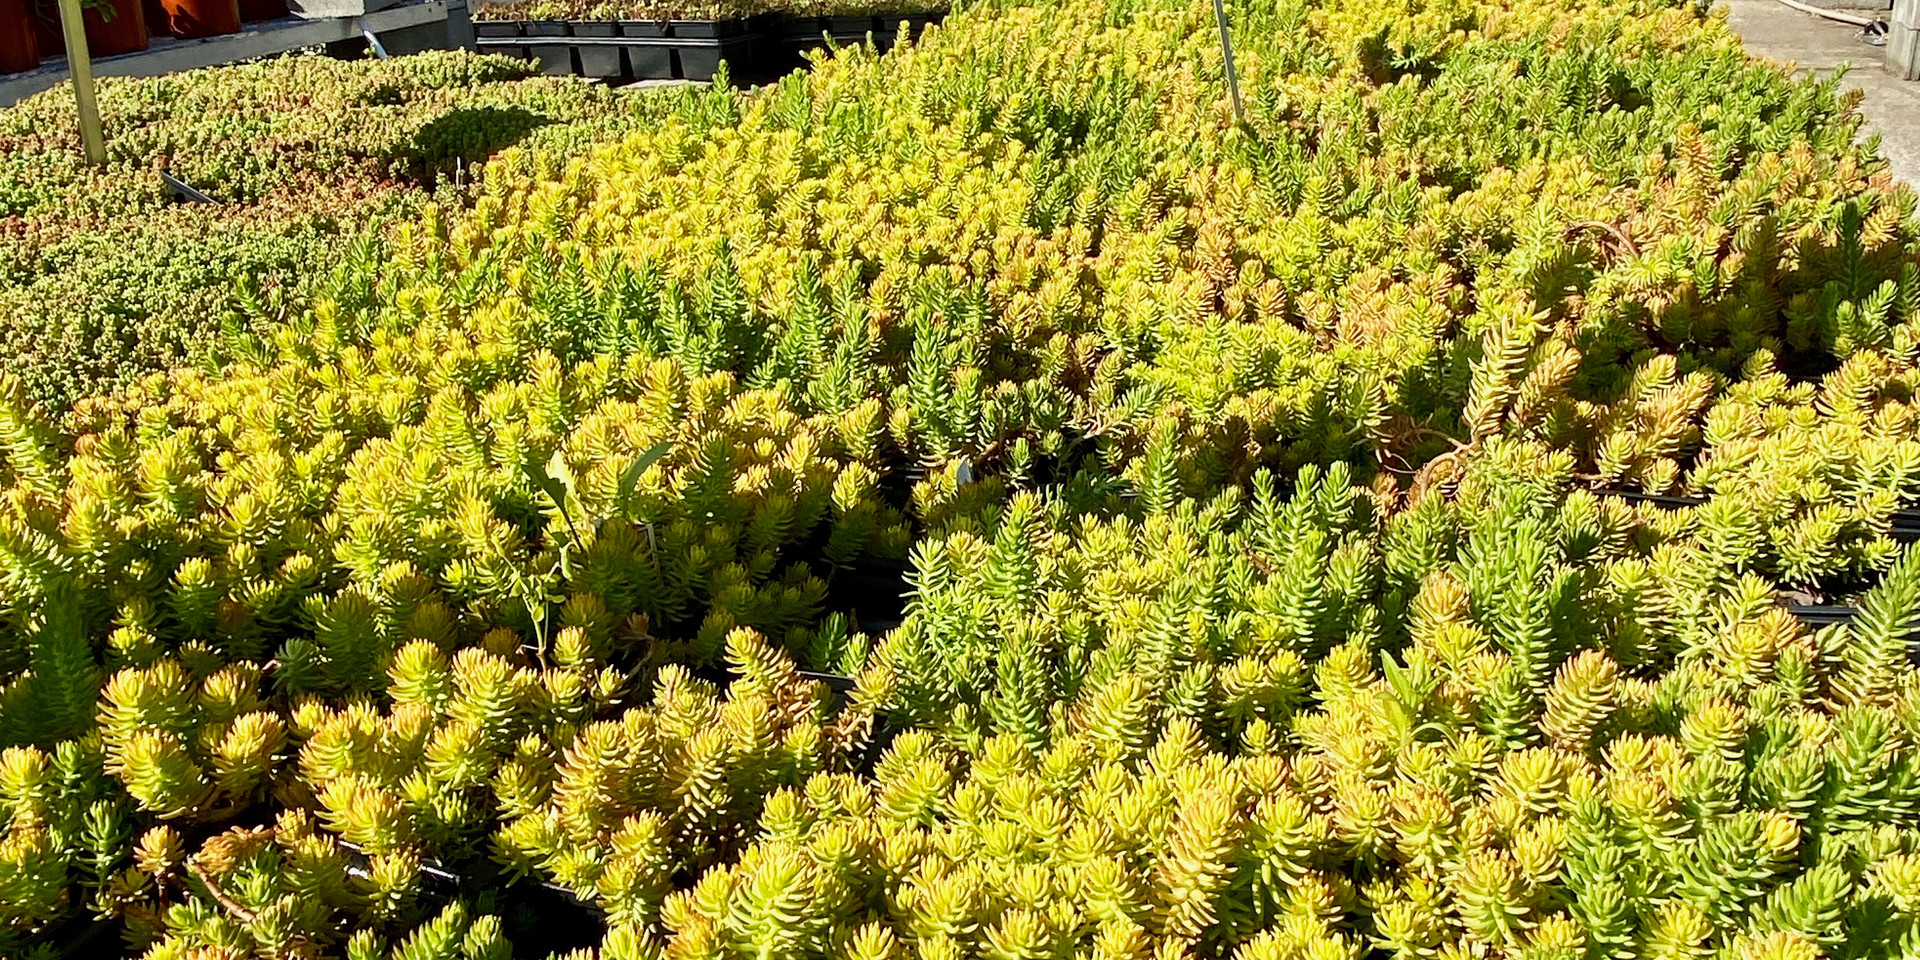 LOTS of sedum - a range of varieties for sunny, dry spots!